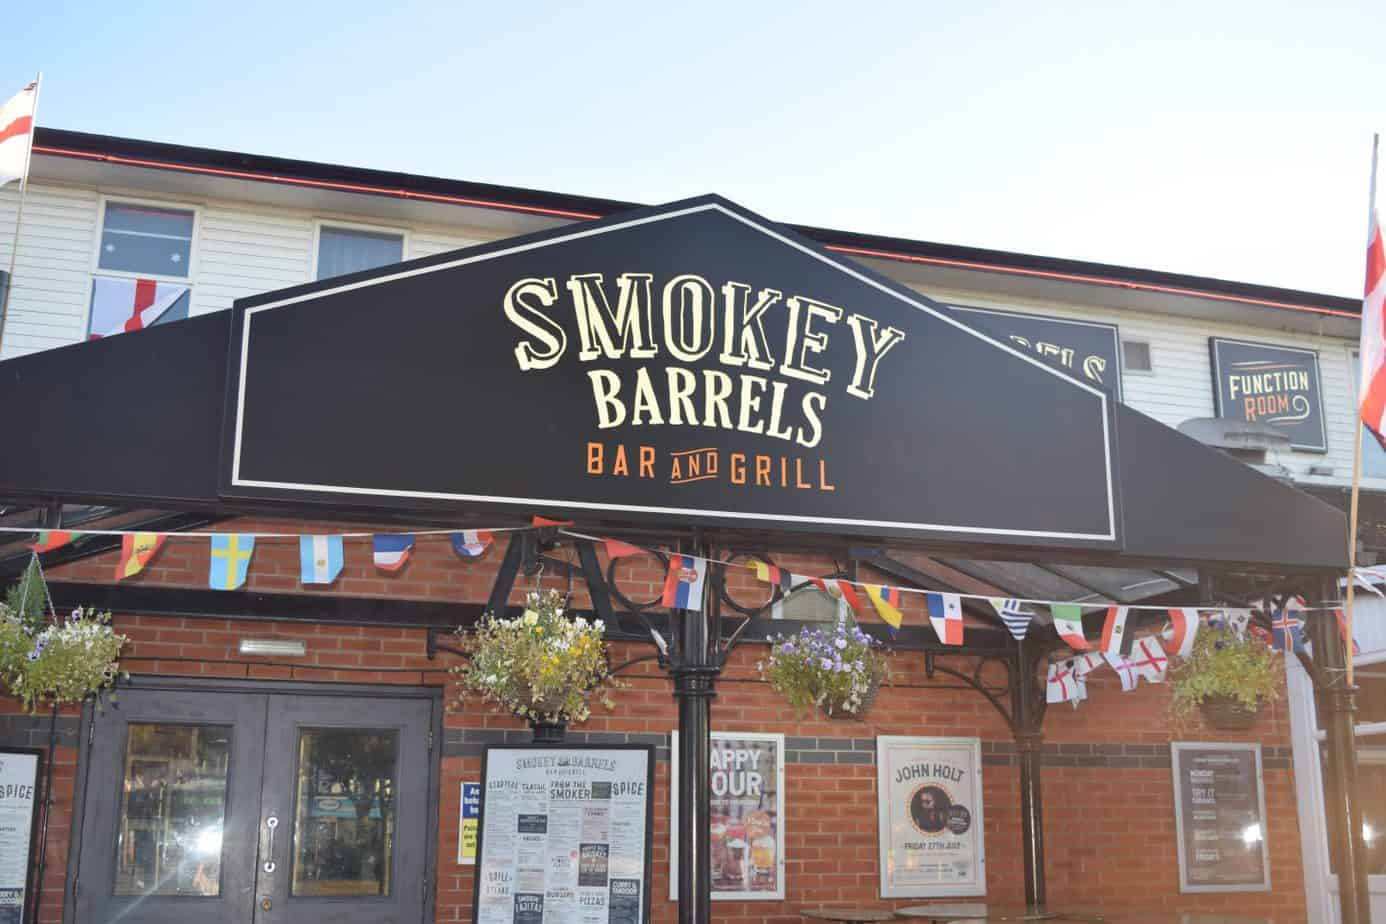 Entrance to Smokey Barrels in Birmingham